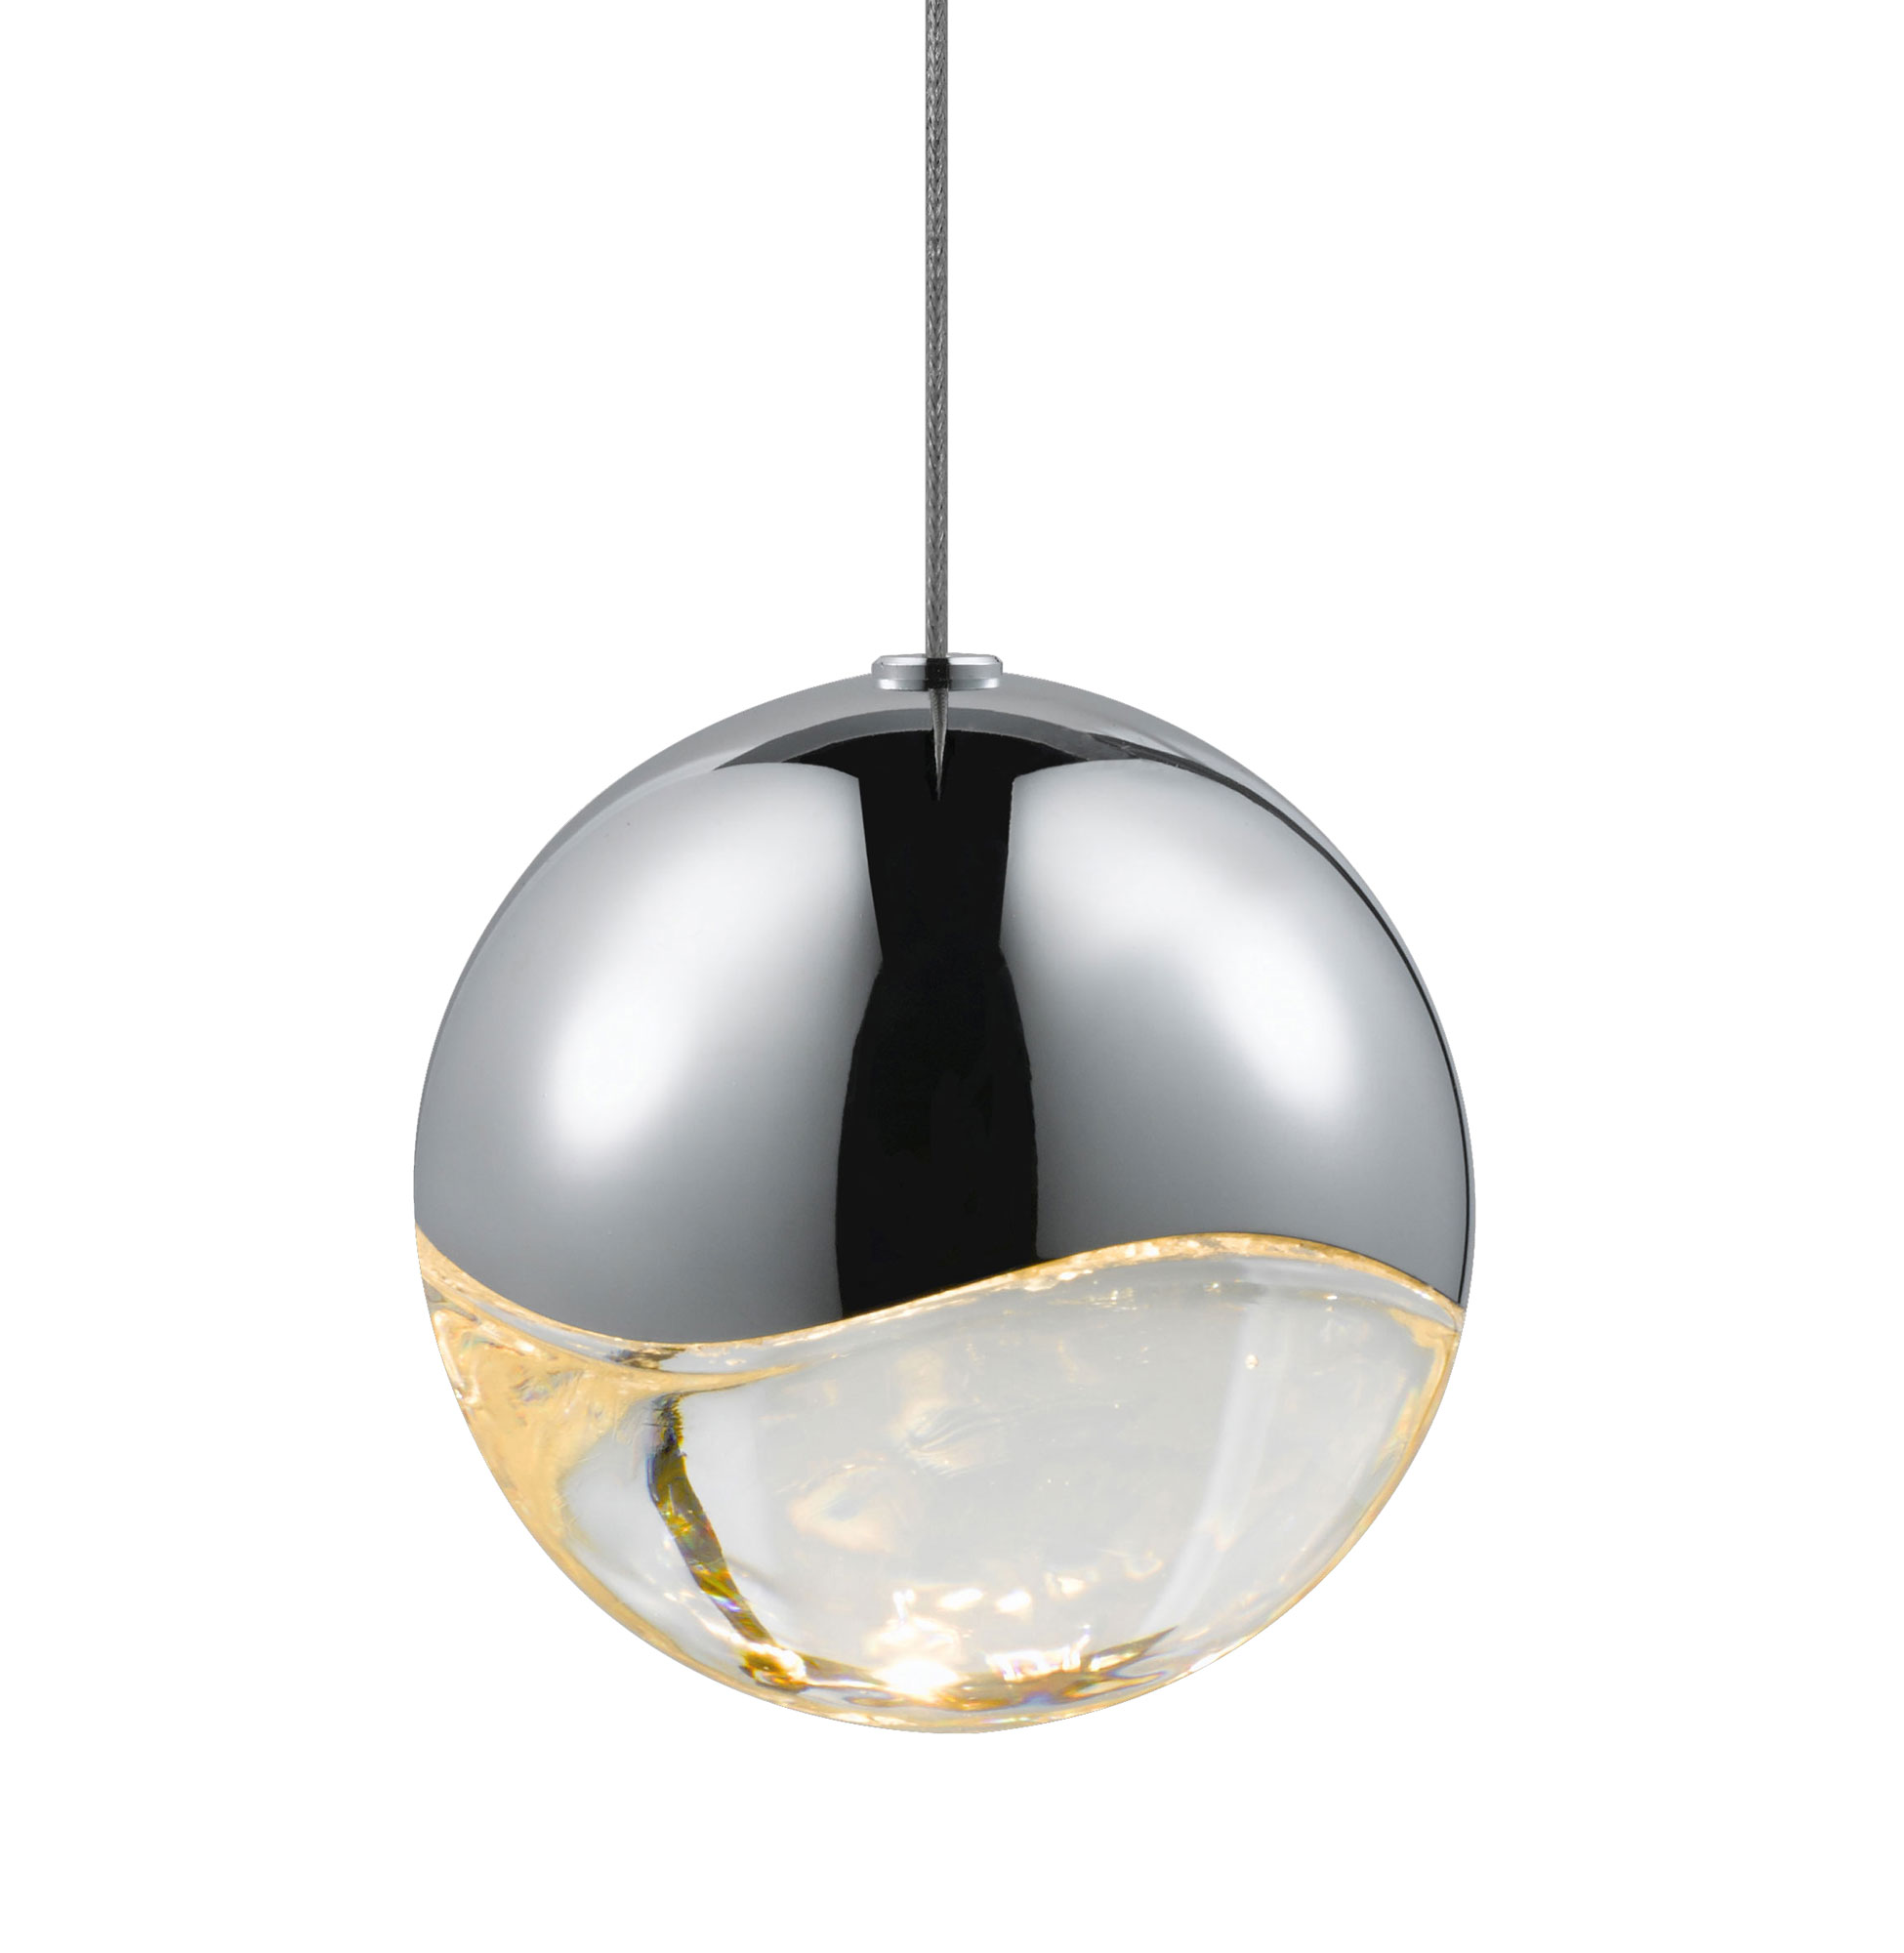 Grapes Pendant with Micro-Dome Canopy by SONNEMAN - A Way of Light | 2910.01-LRG  sc 1 st  Lightology & Pendant with Micro-Dome Canopy by SONNEMAN - A Way of Light ...